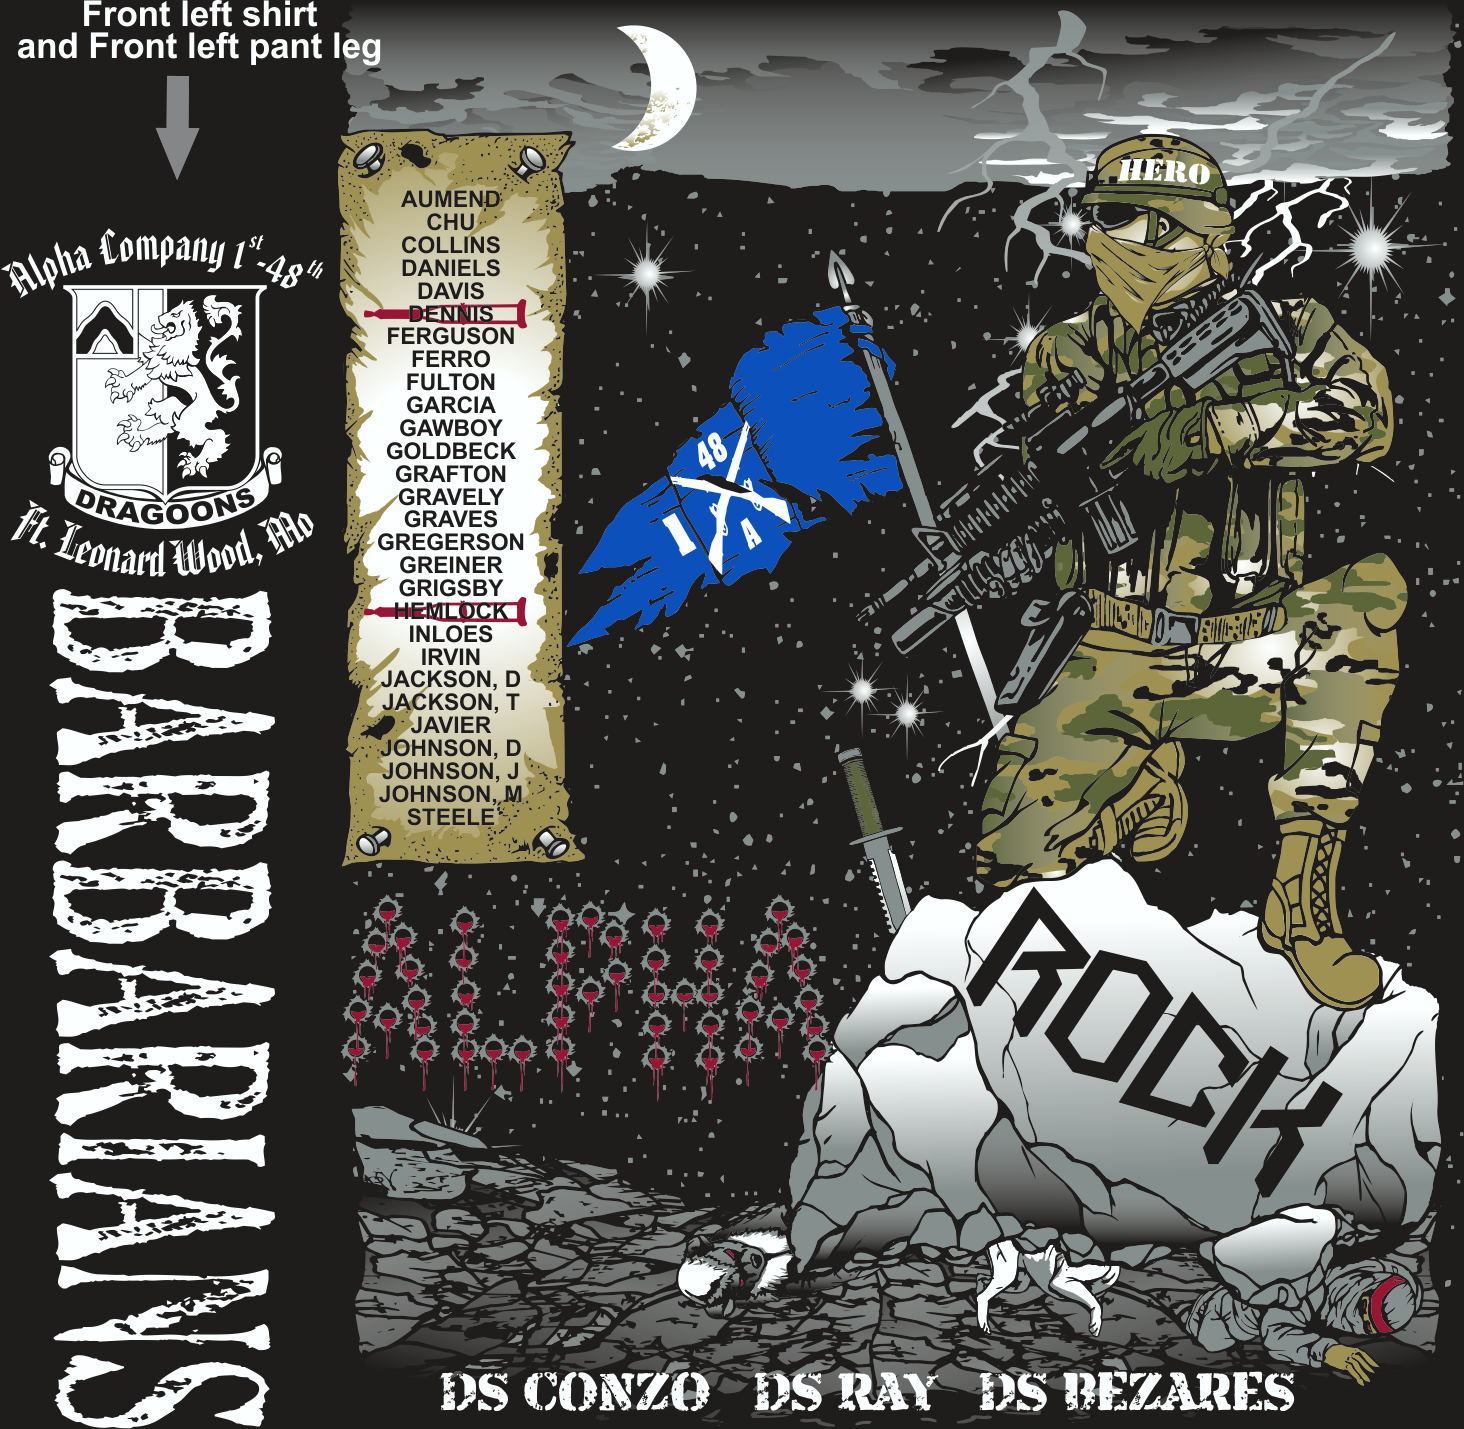 ALPHA 1-48 BARBARIANS GRADUATING DAY 6-16-2016 digital